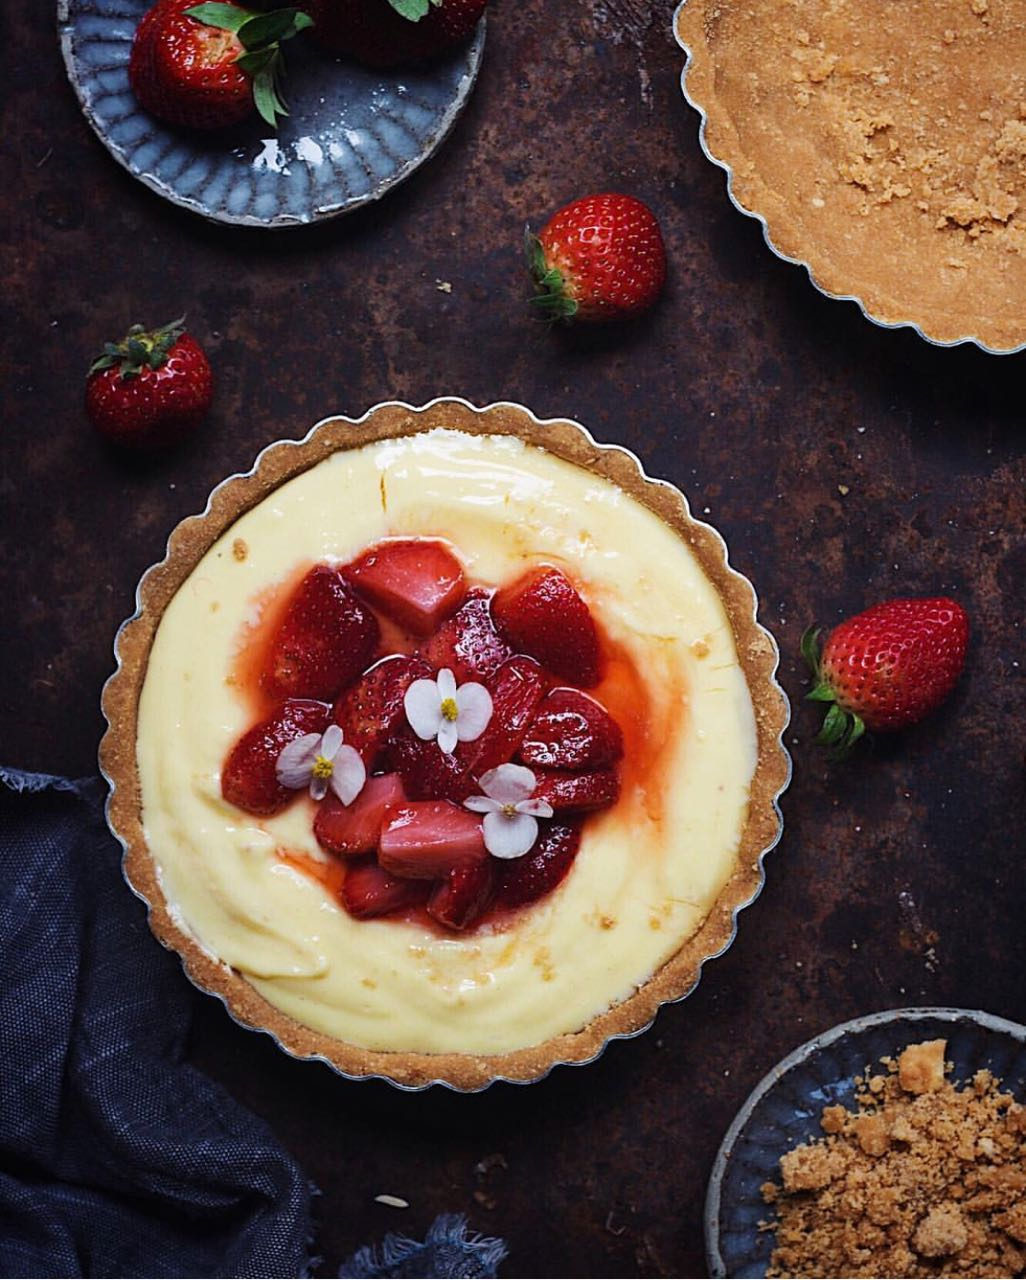 HOW TO MAKE PERFECT TARTS